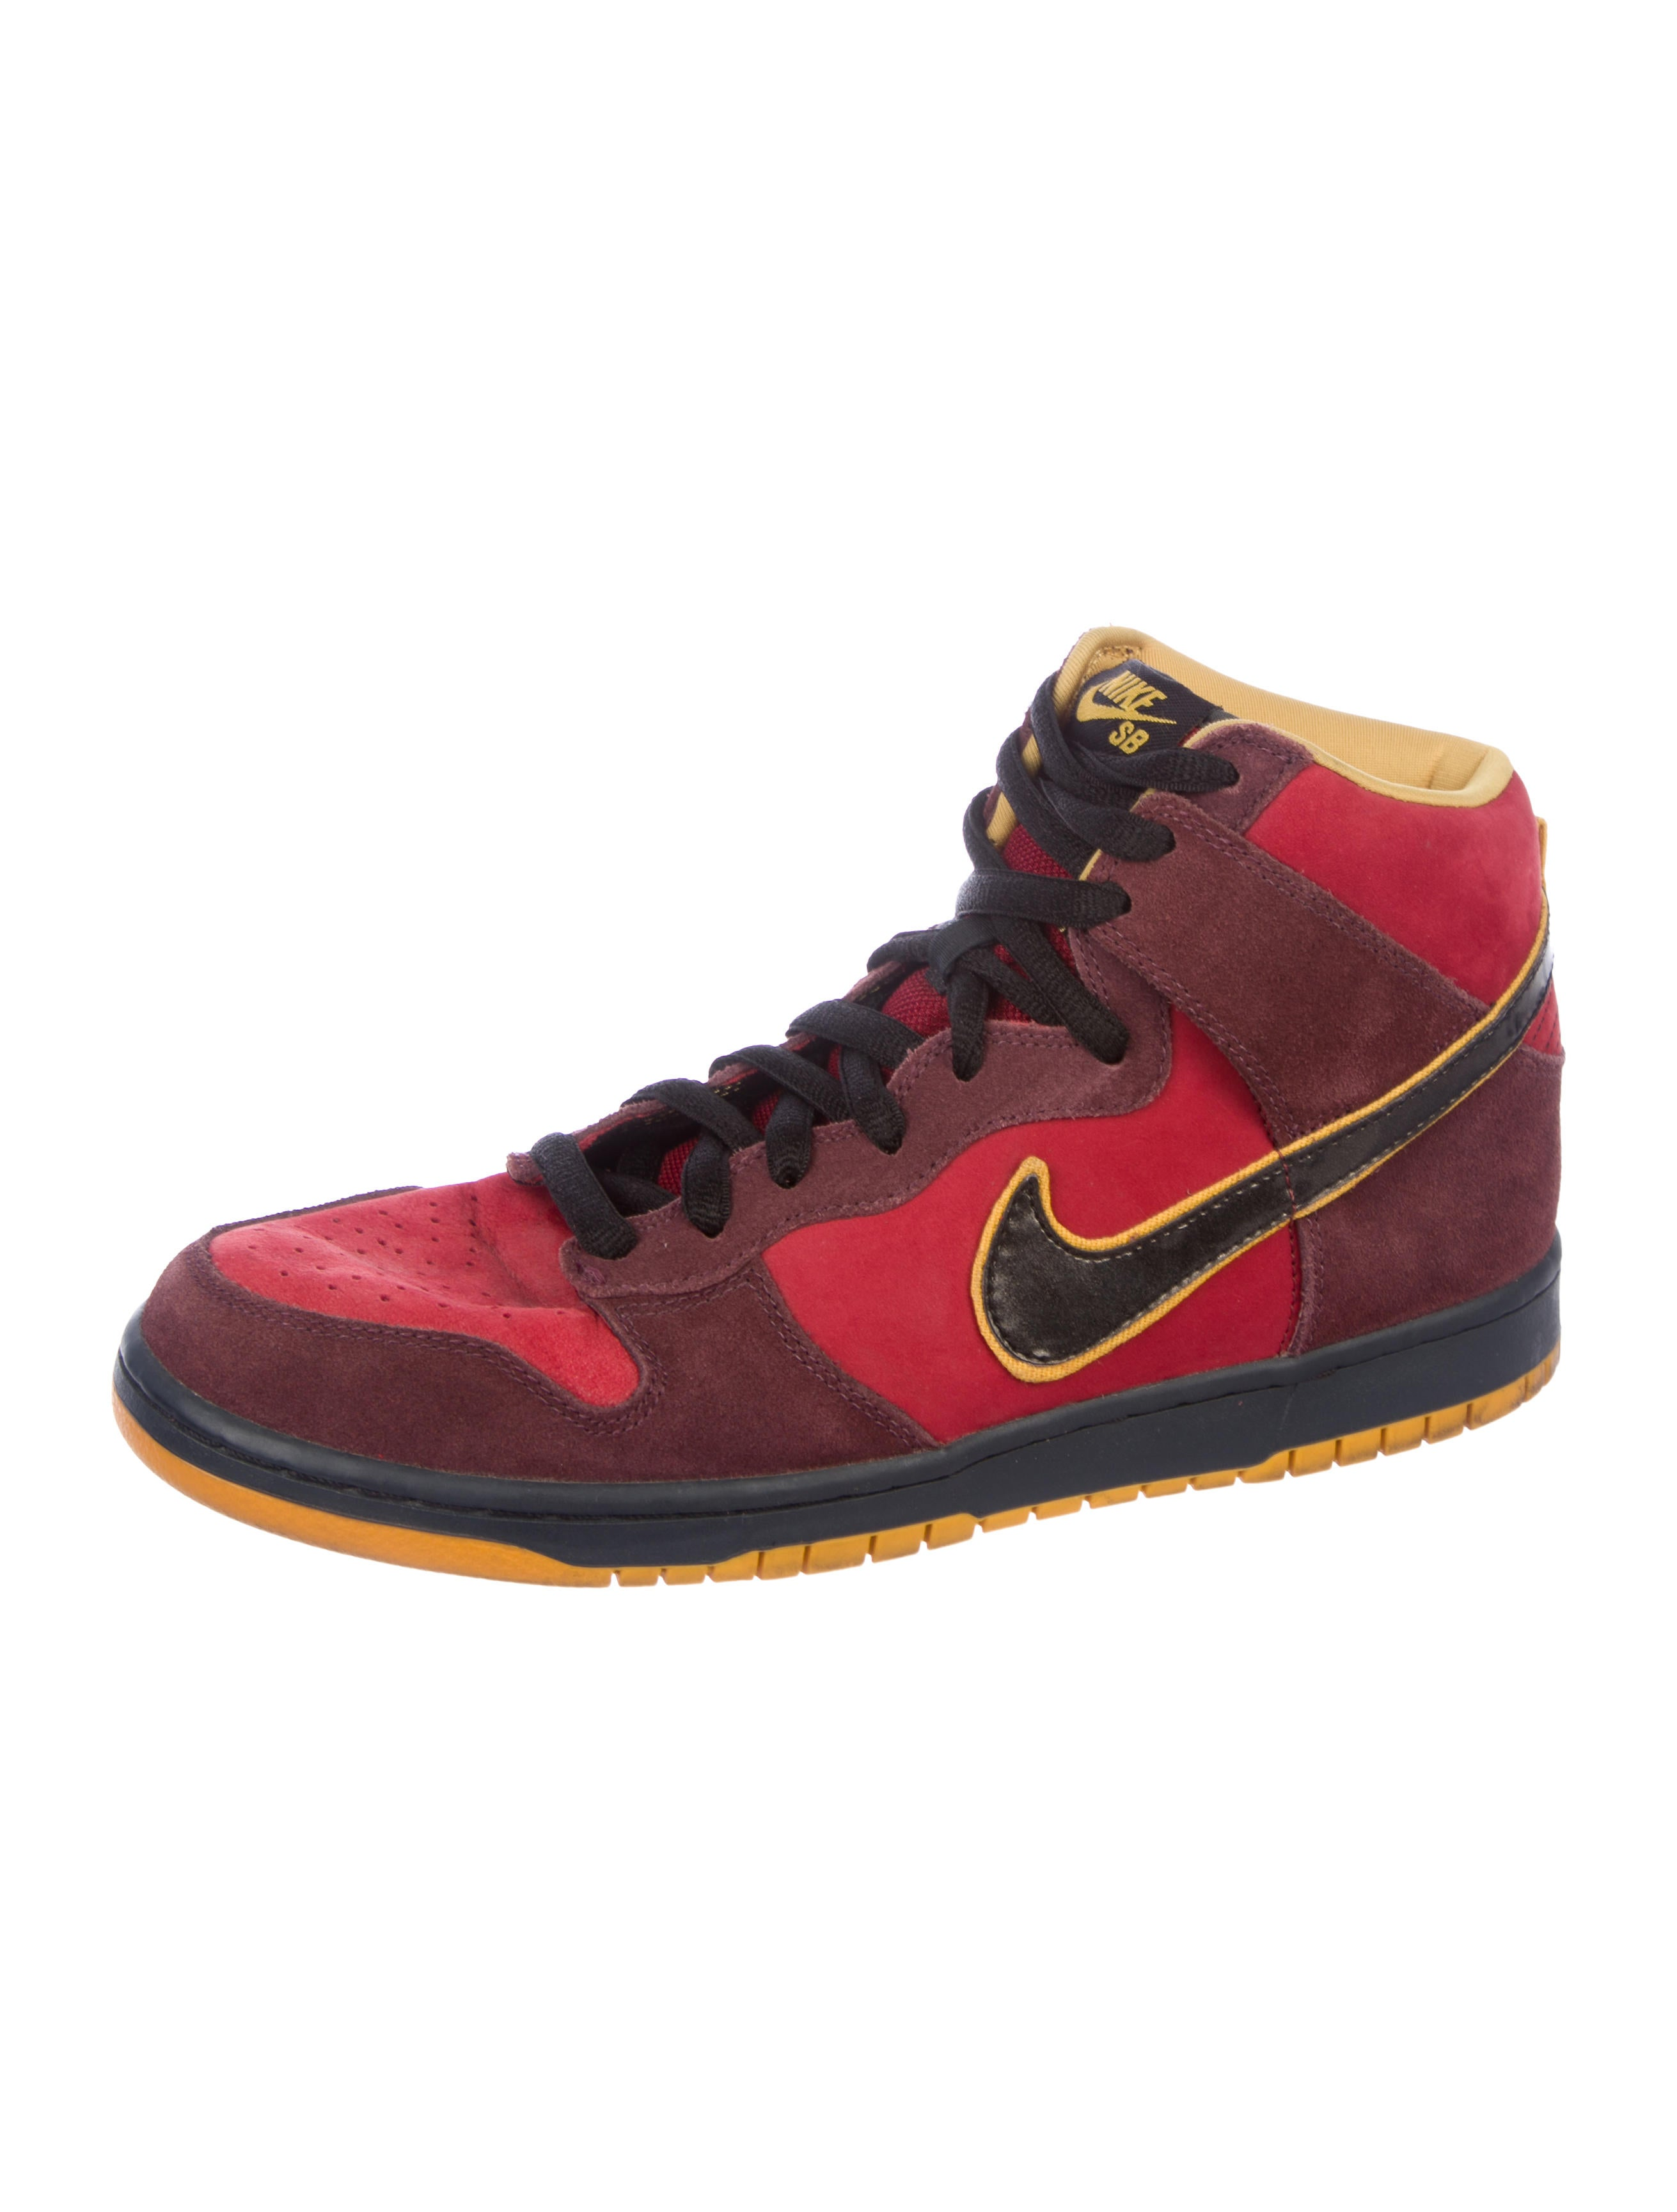 official photos 79646 81d5b ... where to buy nike dunk high premium iron man shoes wu the realreal jpg  2622x3459 nike